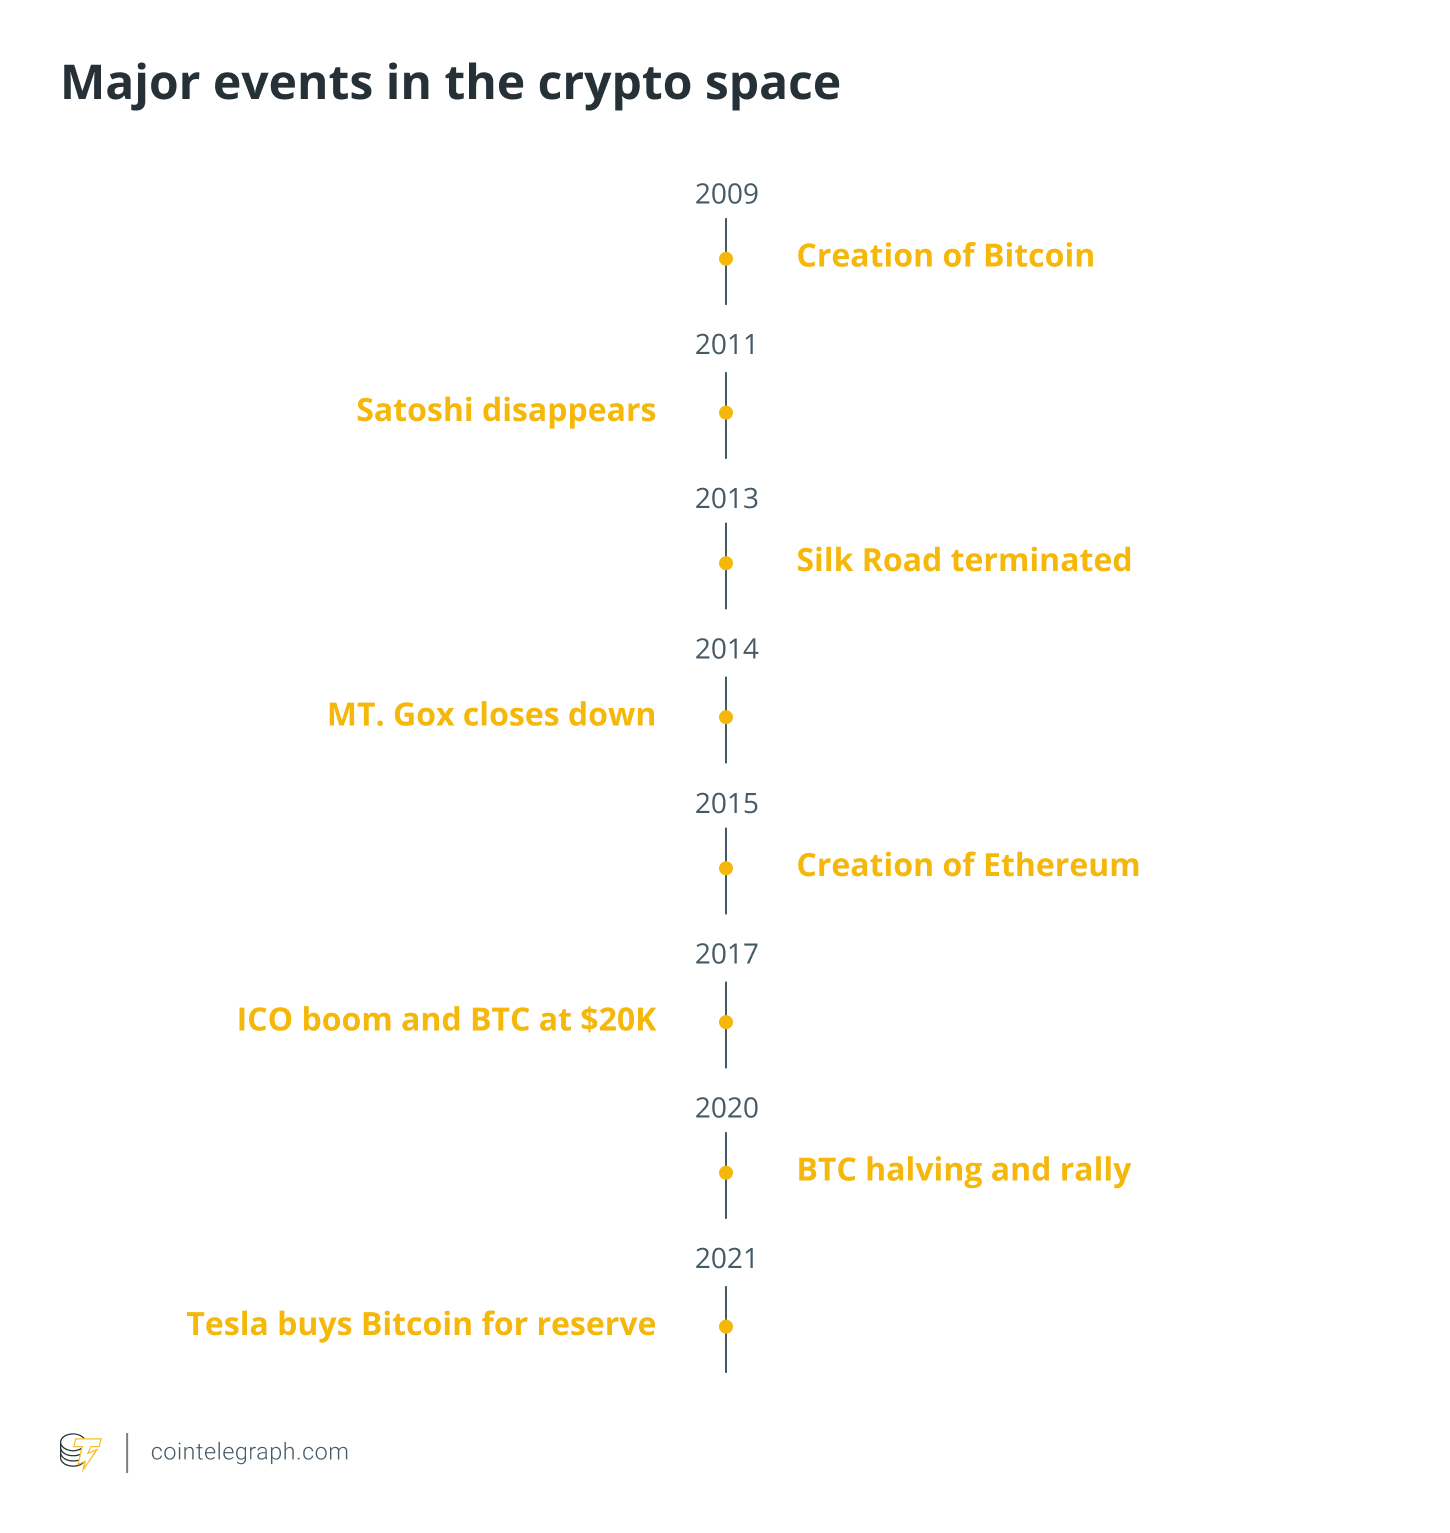 Major events in the crypto space